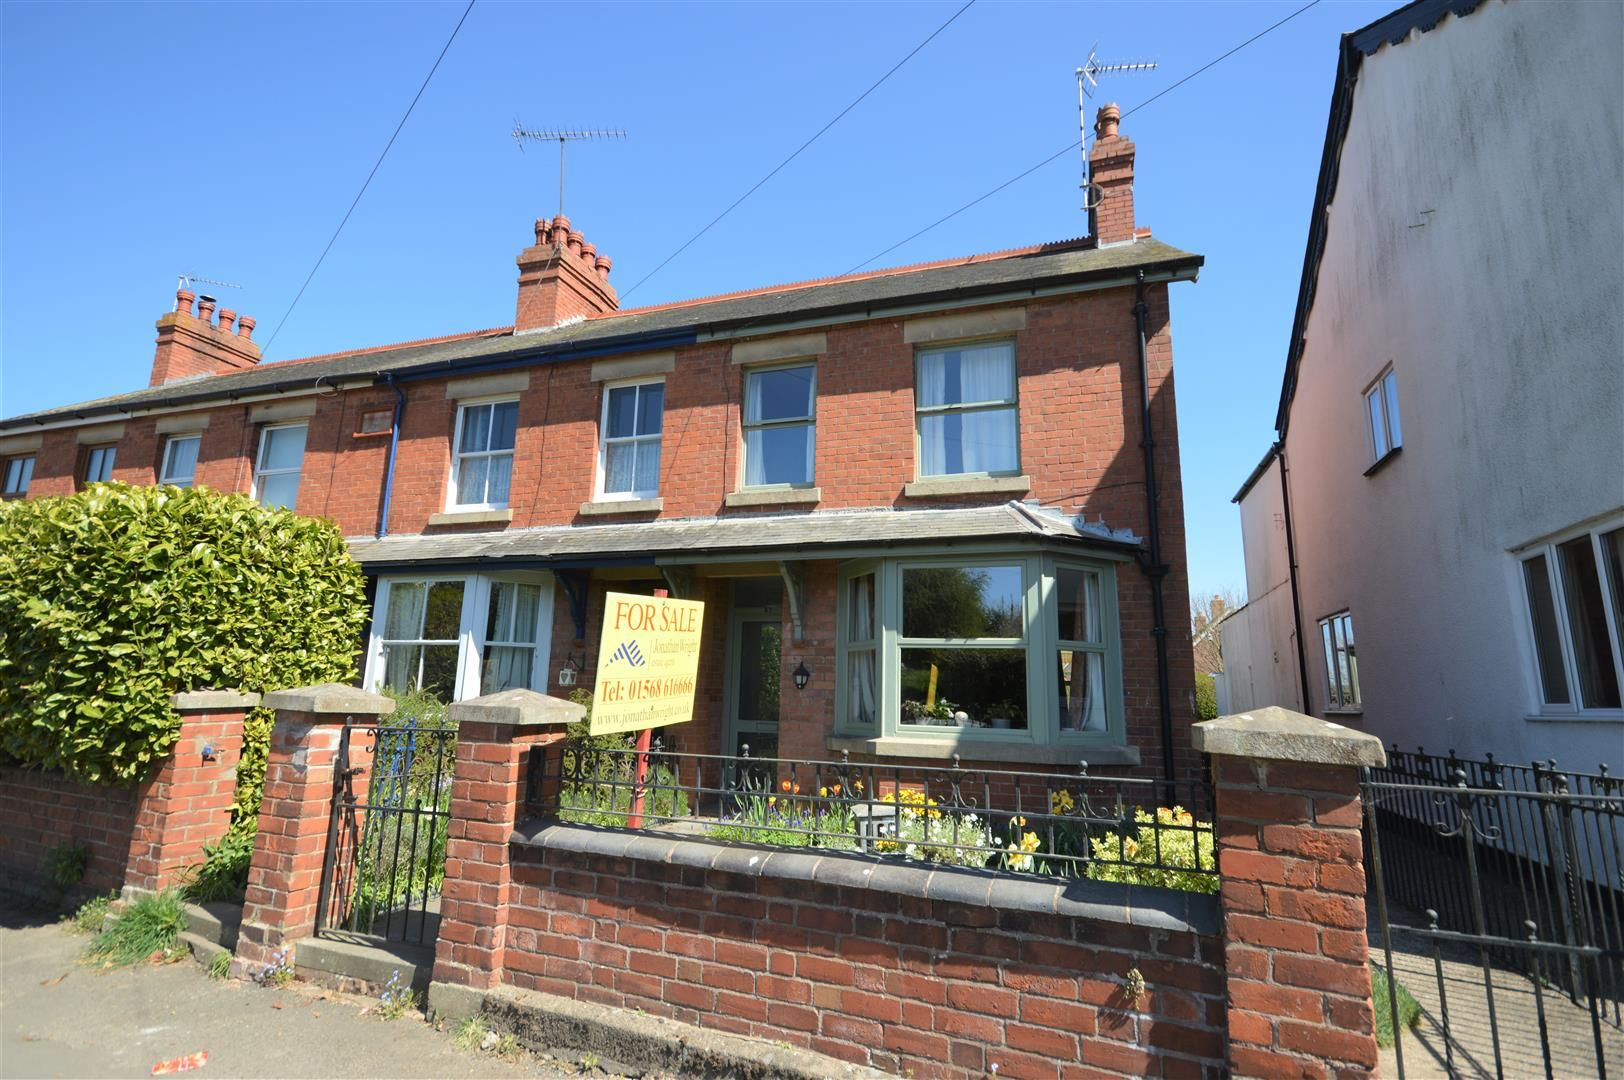 3 bed end of terrace for sale in Leominster  - Property Image 1